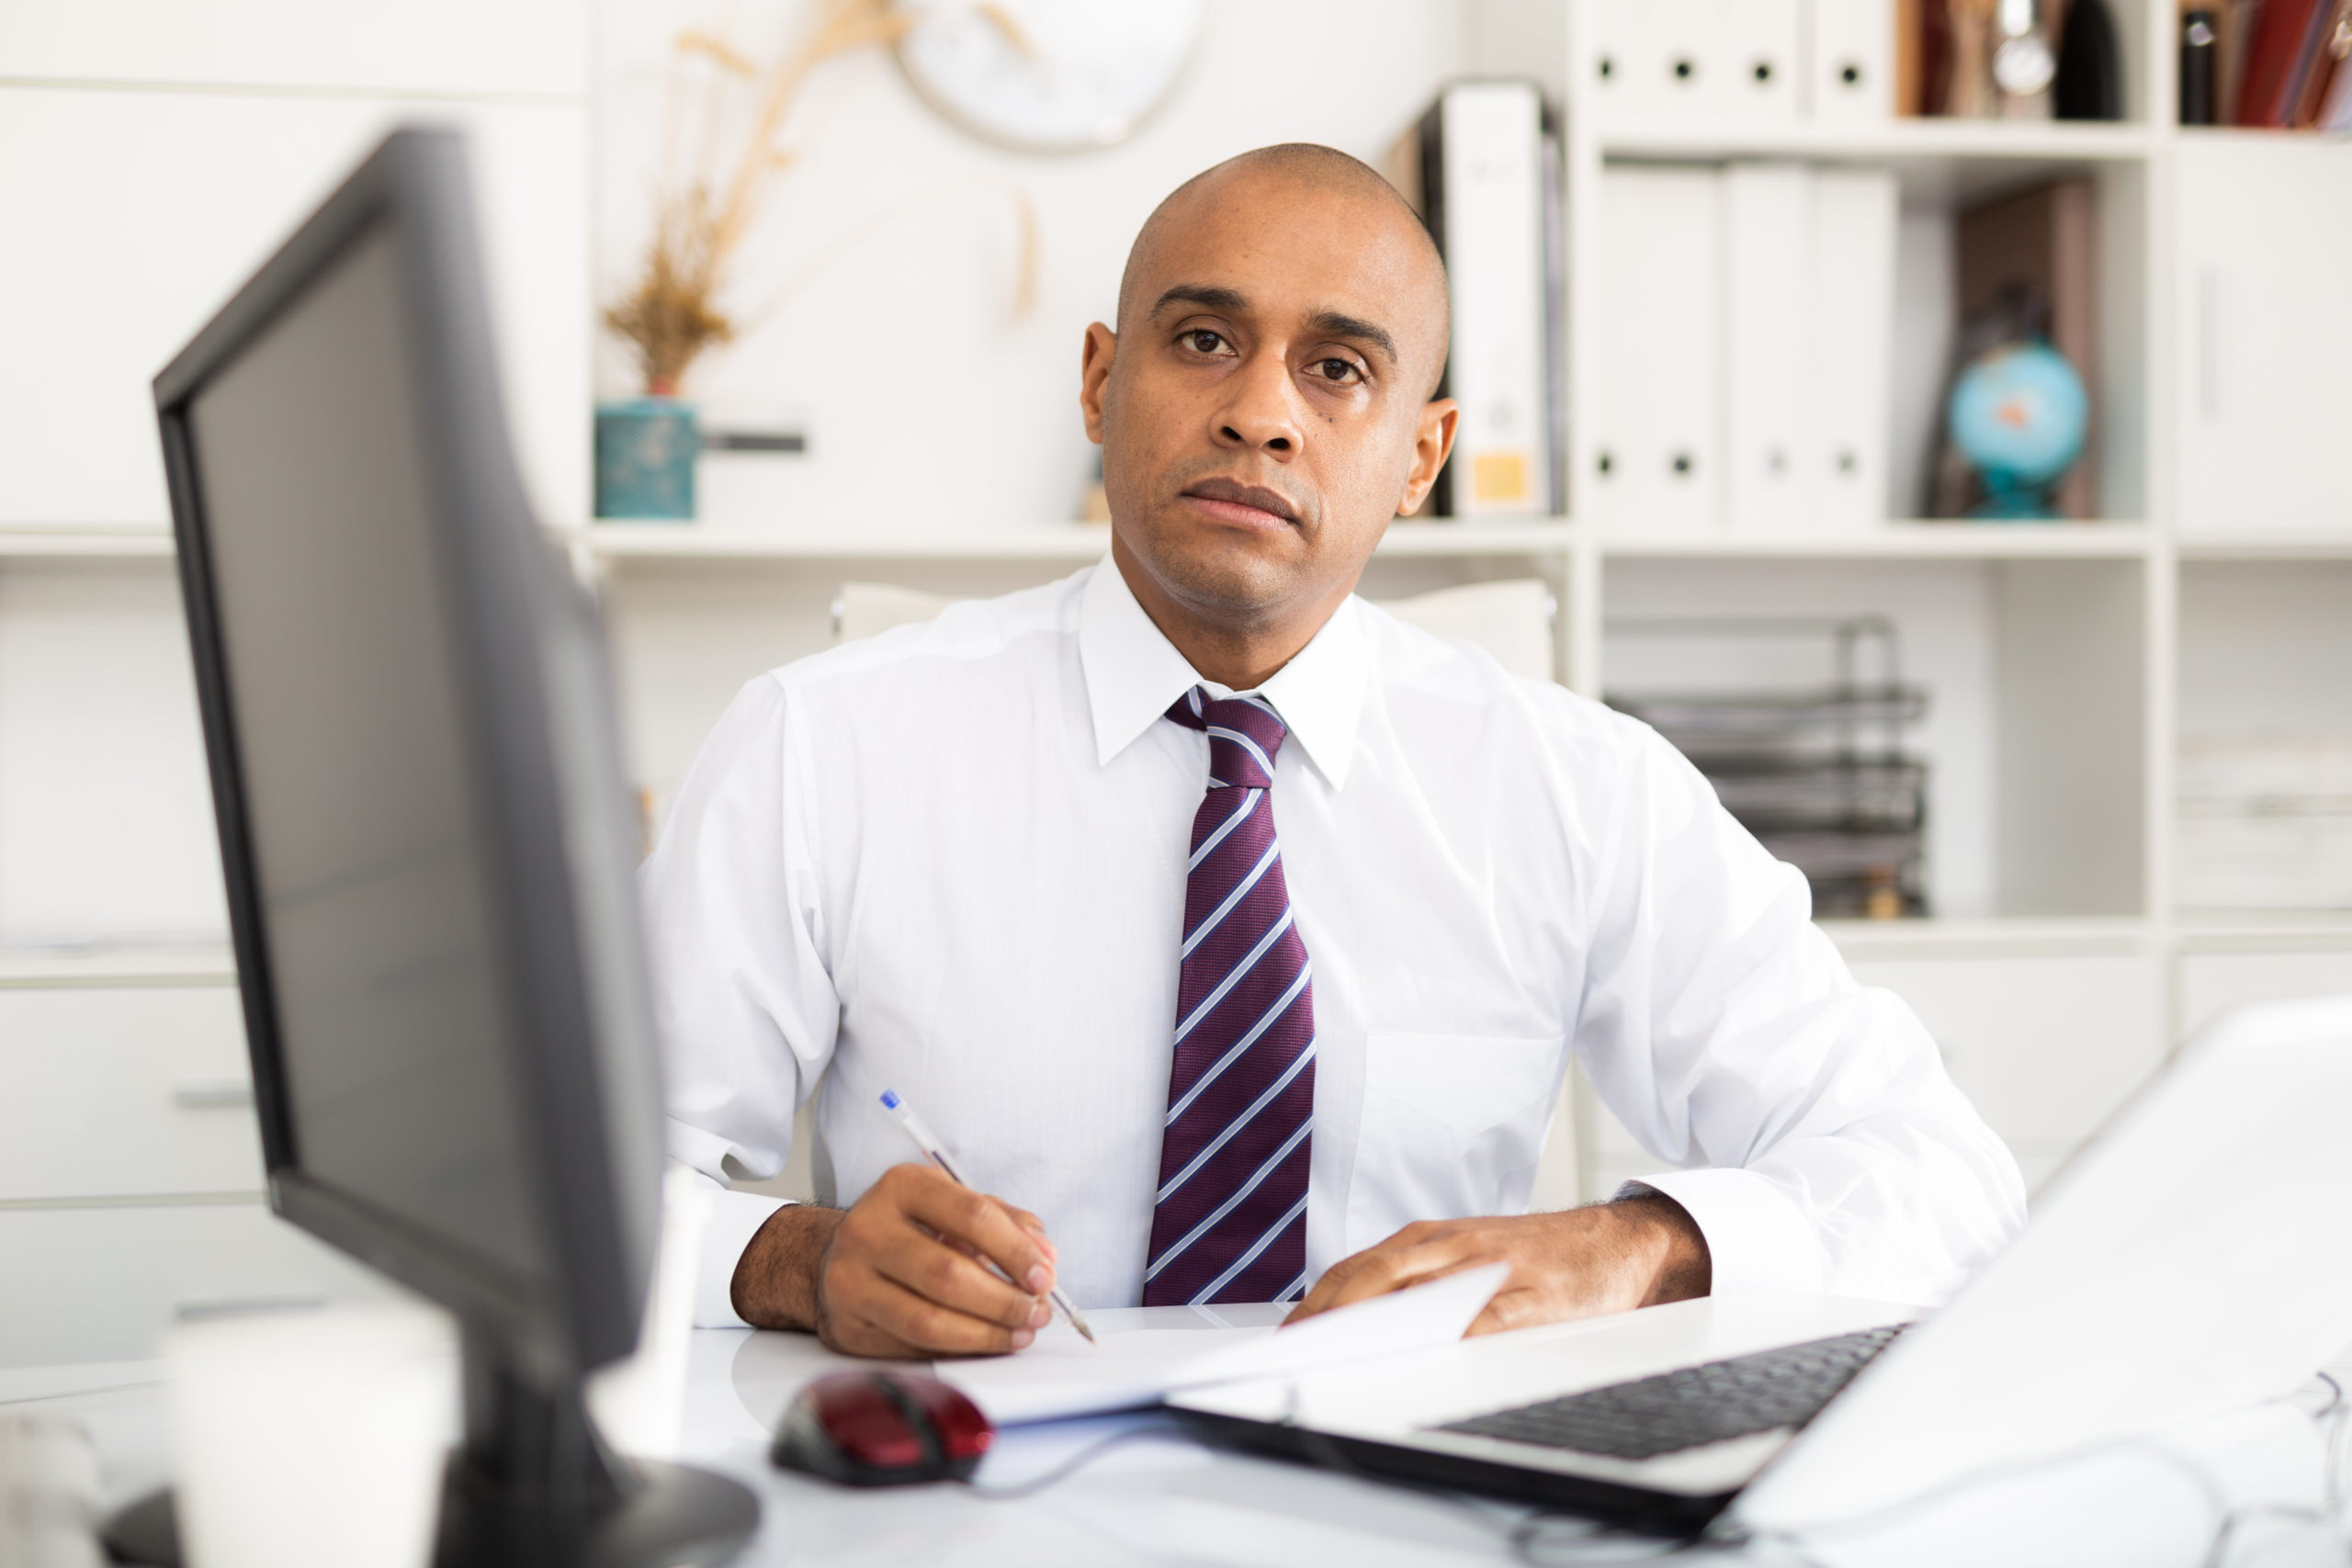 Professional business man using laptop at workplace in office